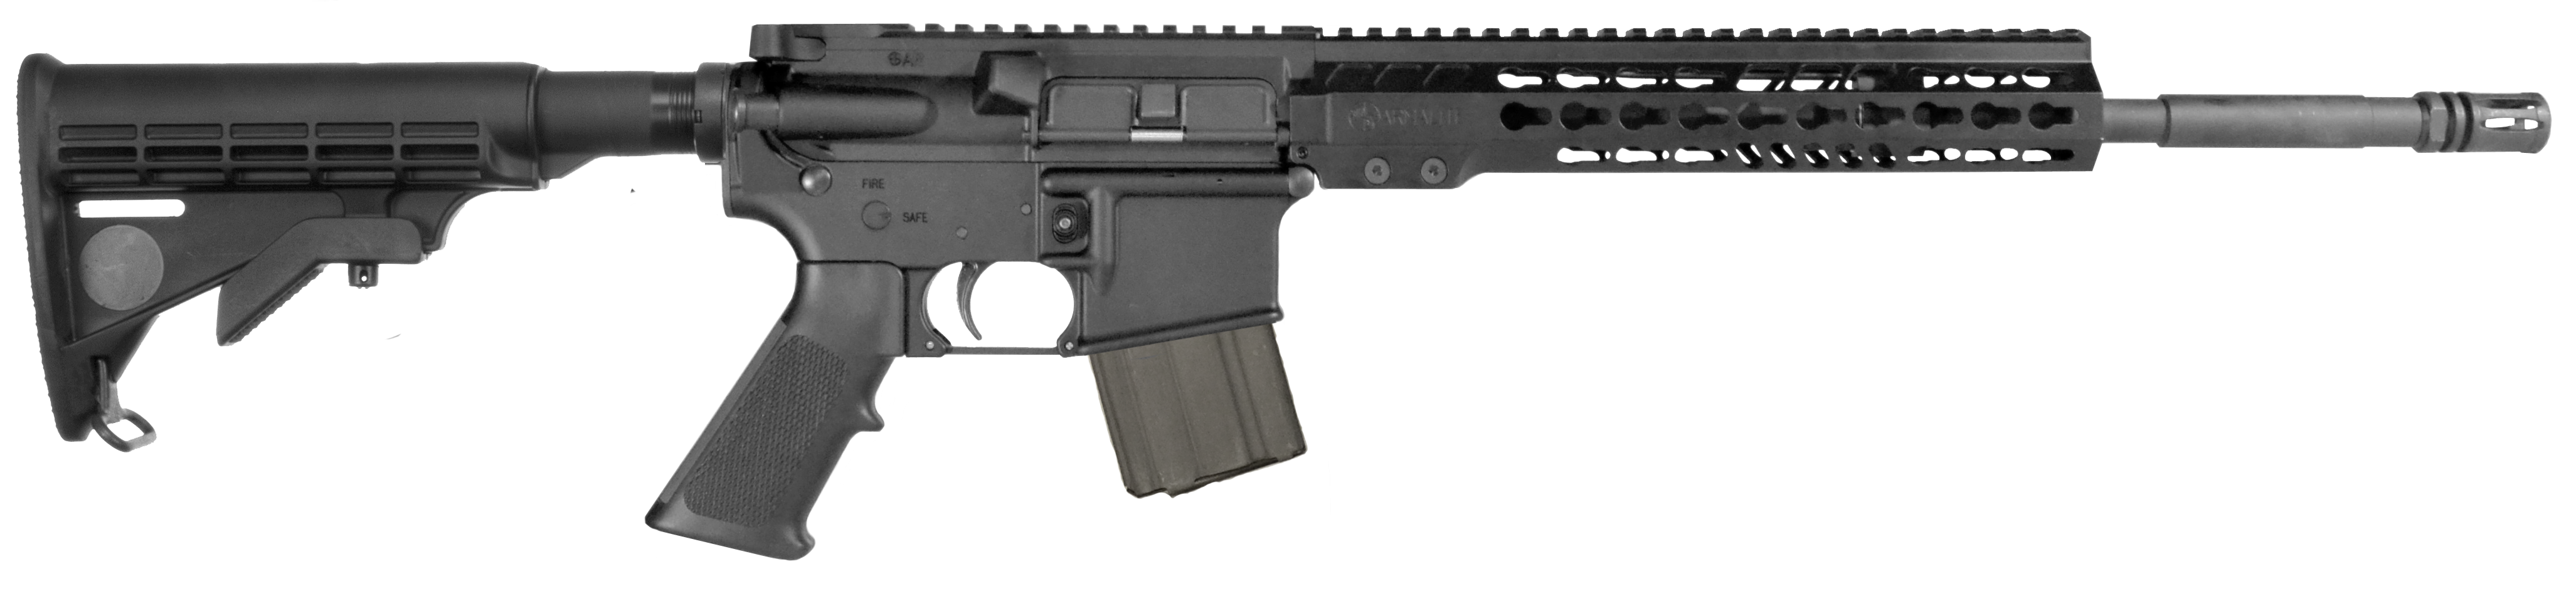 ArmaLite  M-15 Light Tactical Carbine *CO Compliant* Semi-Automatic 223 Remington/5.56 NATO 16